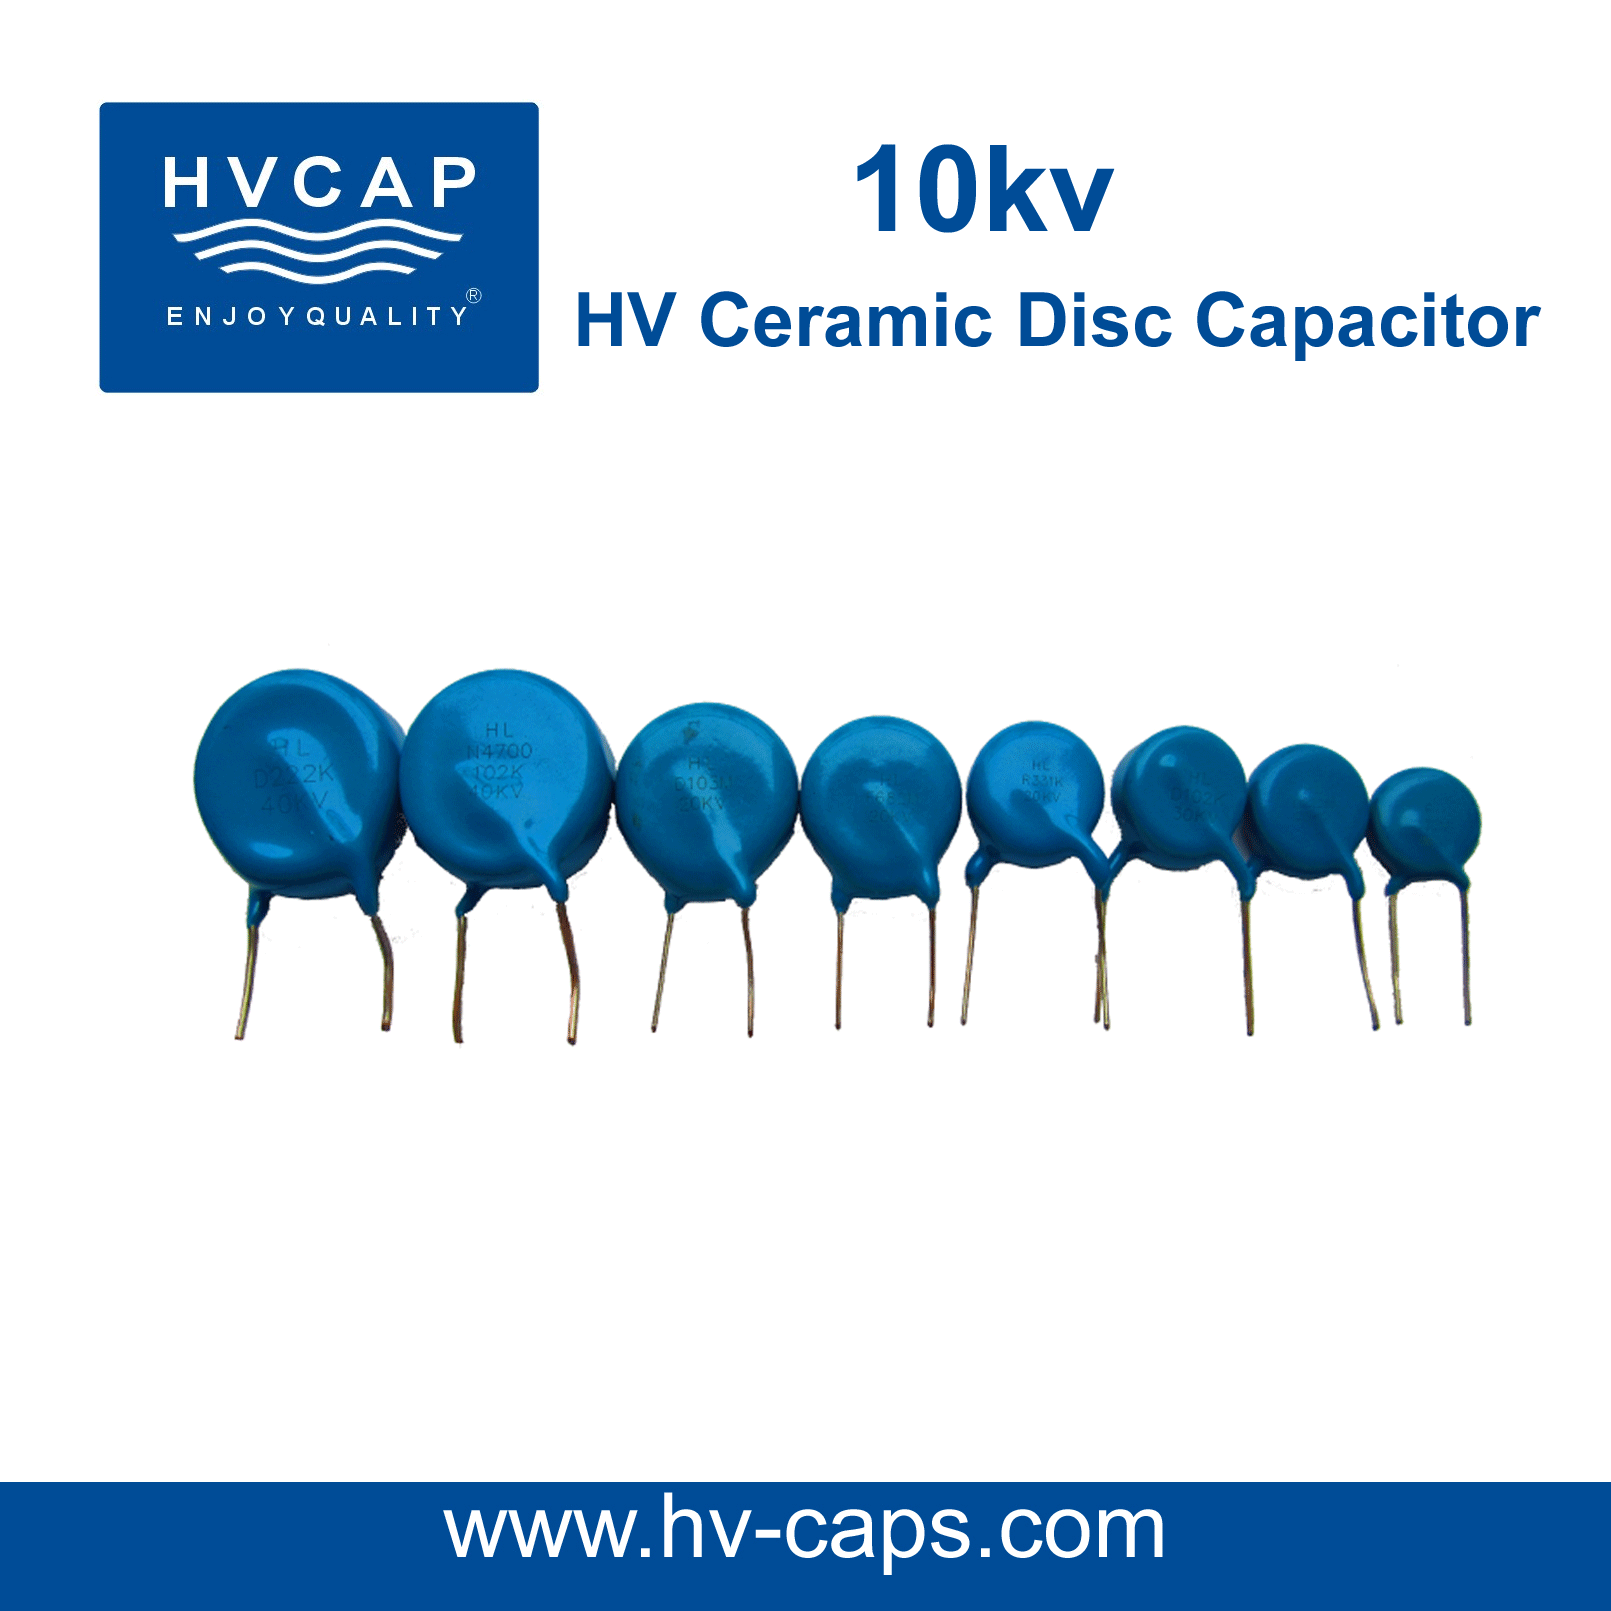 High Voltage Ceramic Capacitor 10kv detail specification.